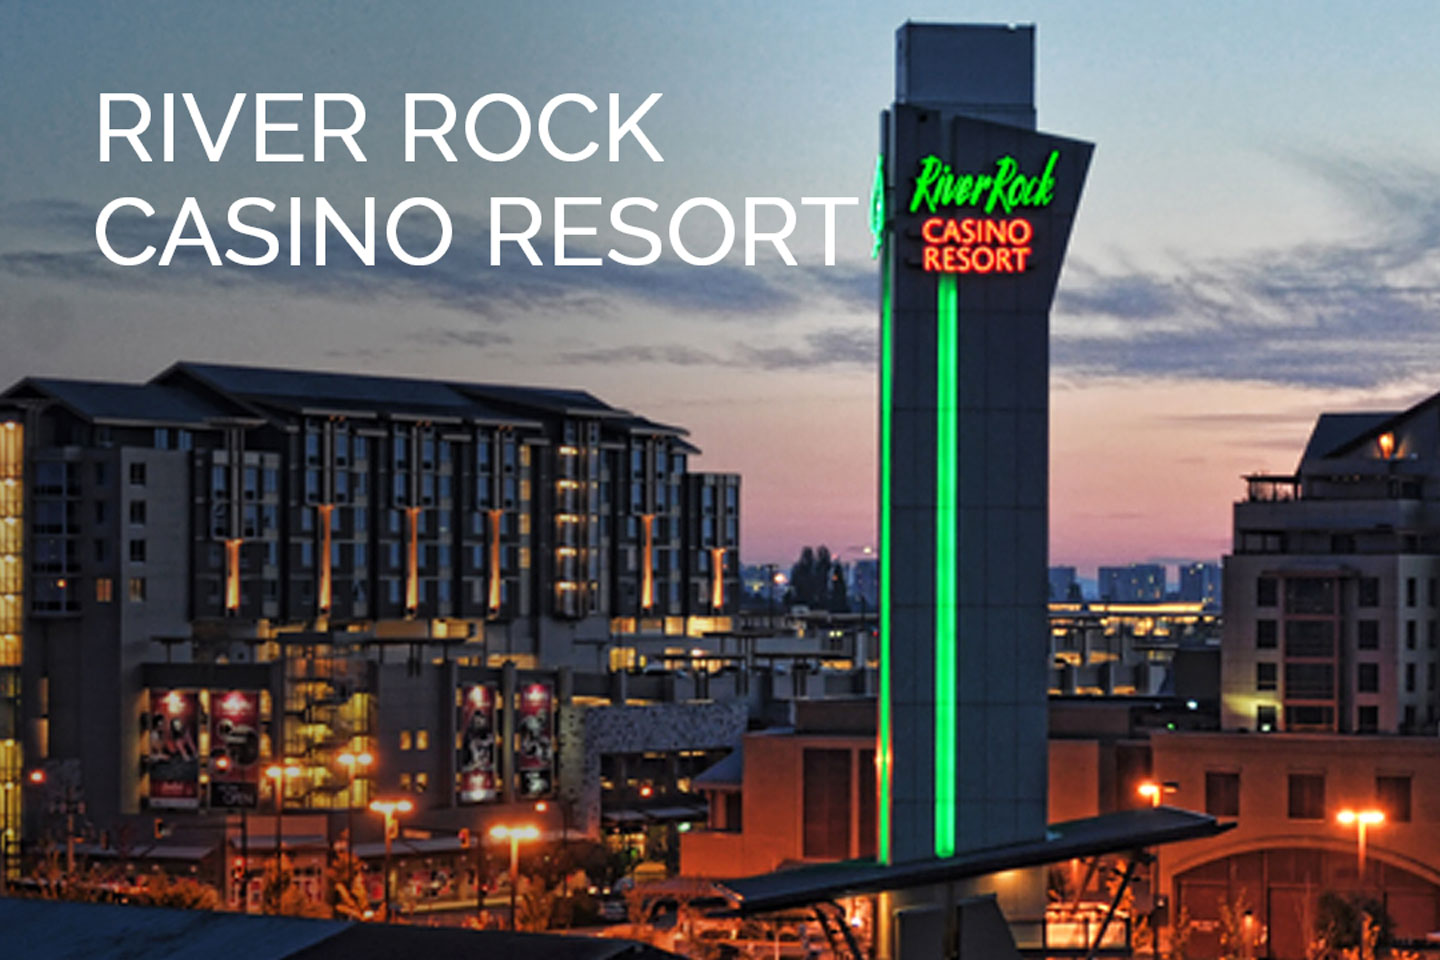 riverrockcasinoresort.jpg